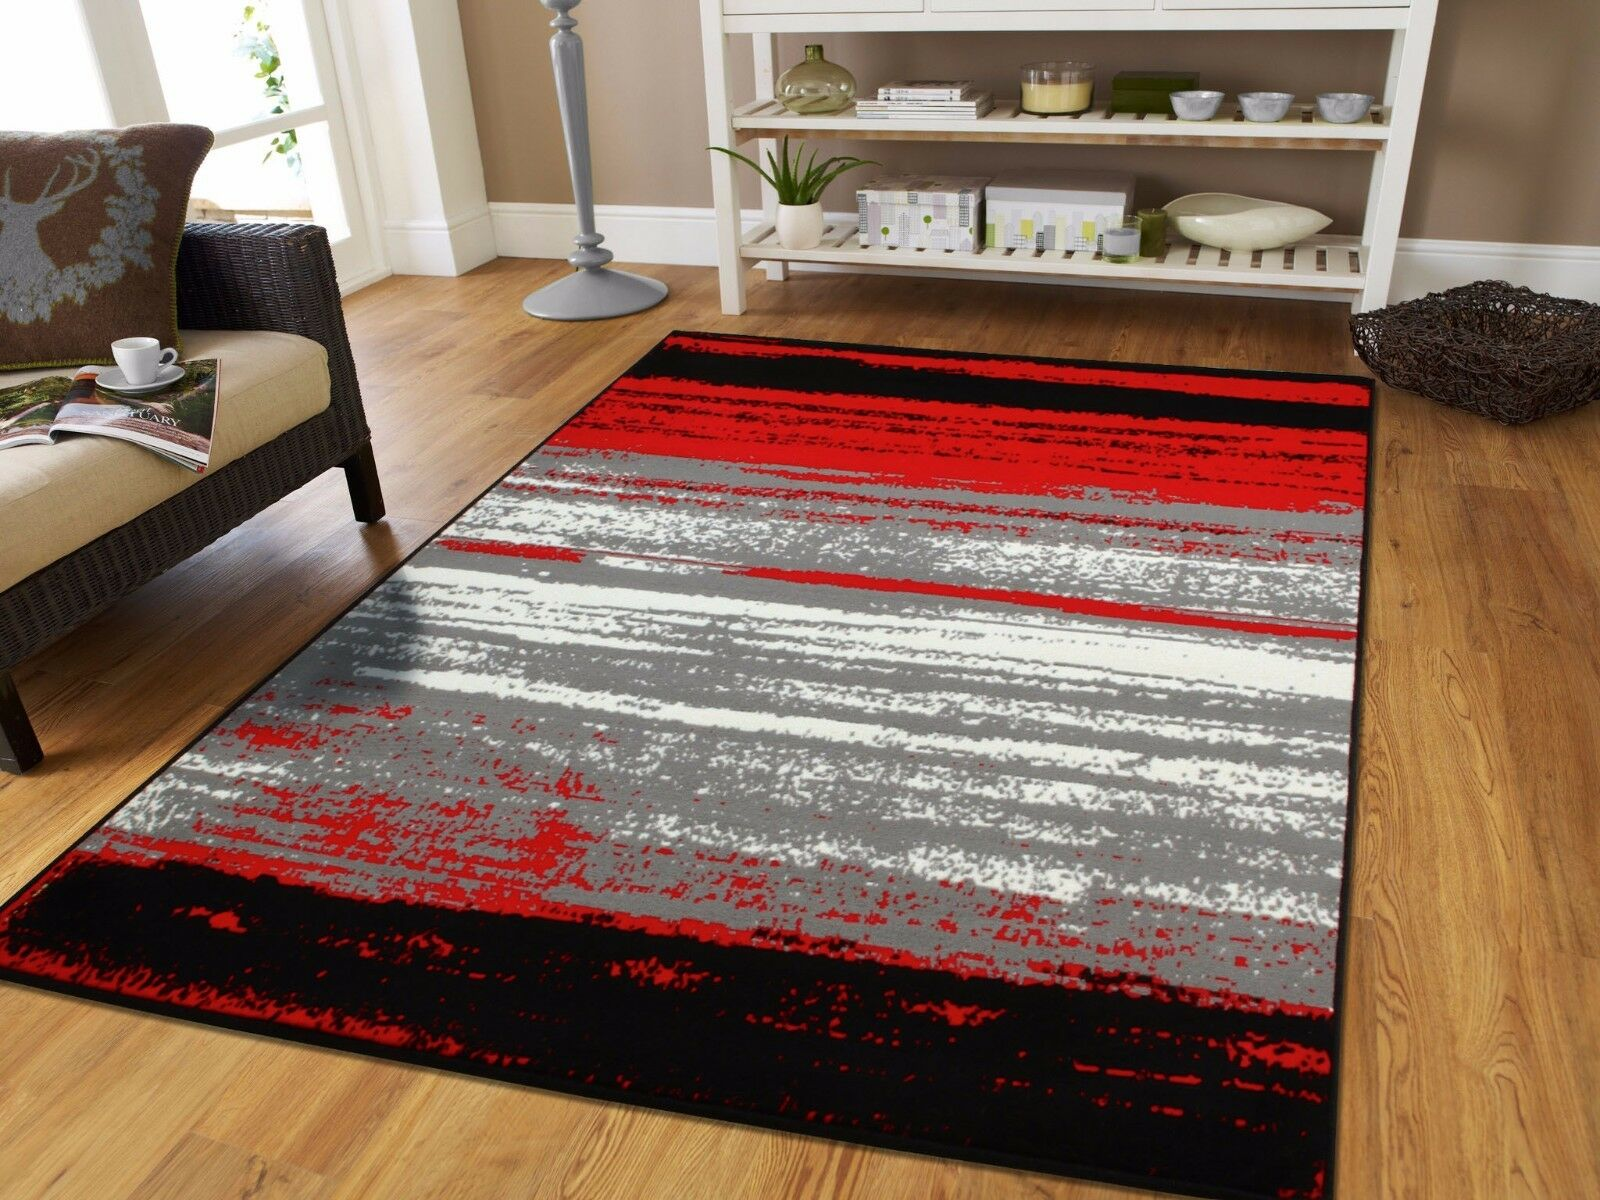 Large Grey Modern Rugs For Living Room 8x10 Abstract Area Rug Red Black Gray 5x7 1 Of 1only 0 Available See More